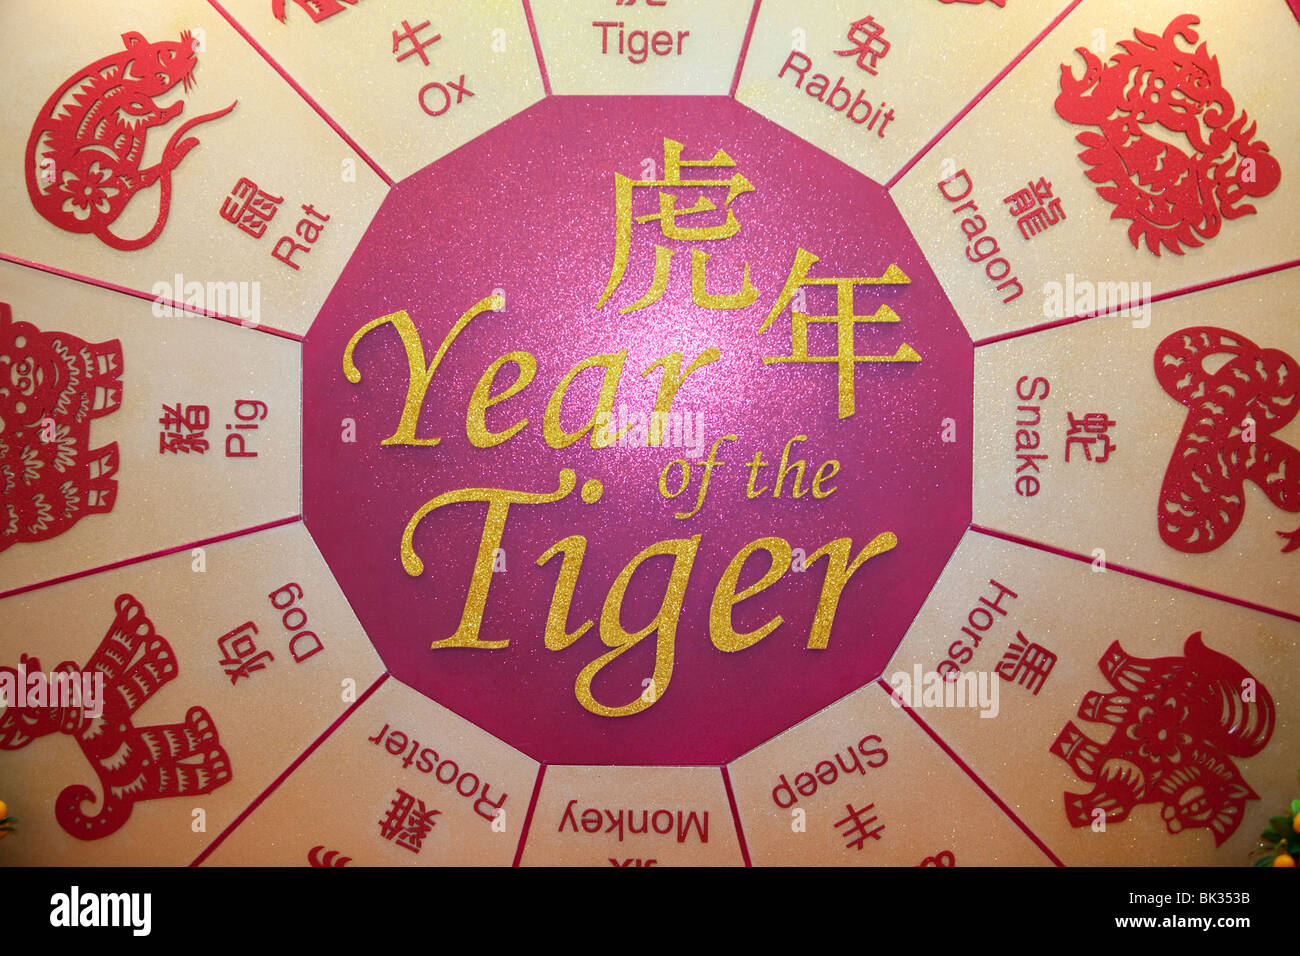 The Chinese year of the Tiger, sign in Hong Kong, China. - Stock Image